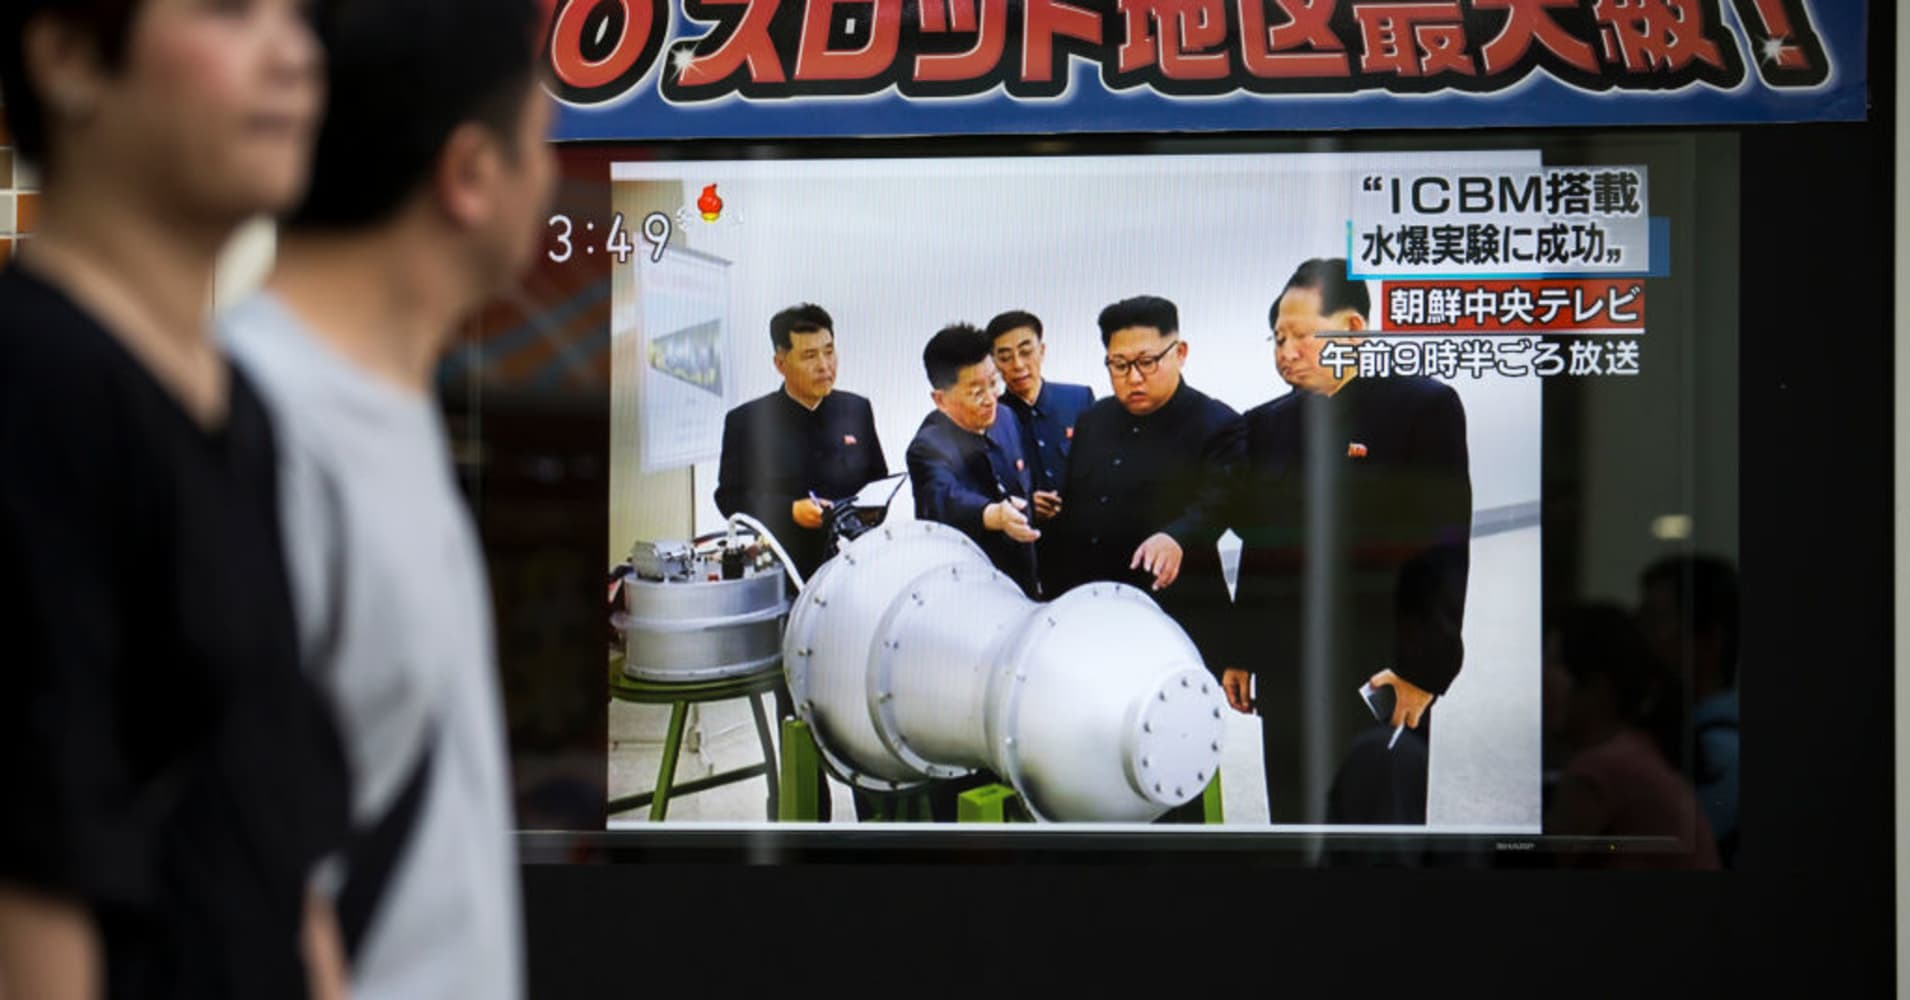 North Korea vows to dismantle nuclear test site within weeks, invites world press to watch